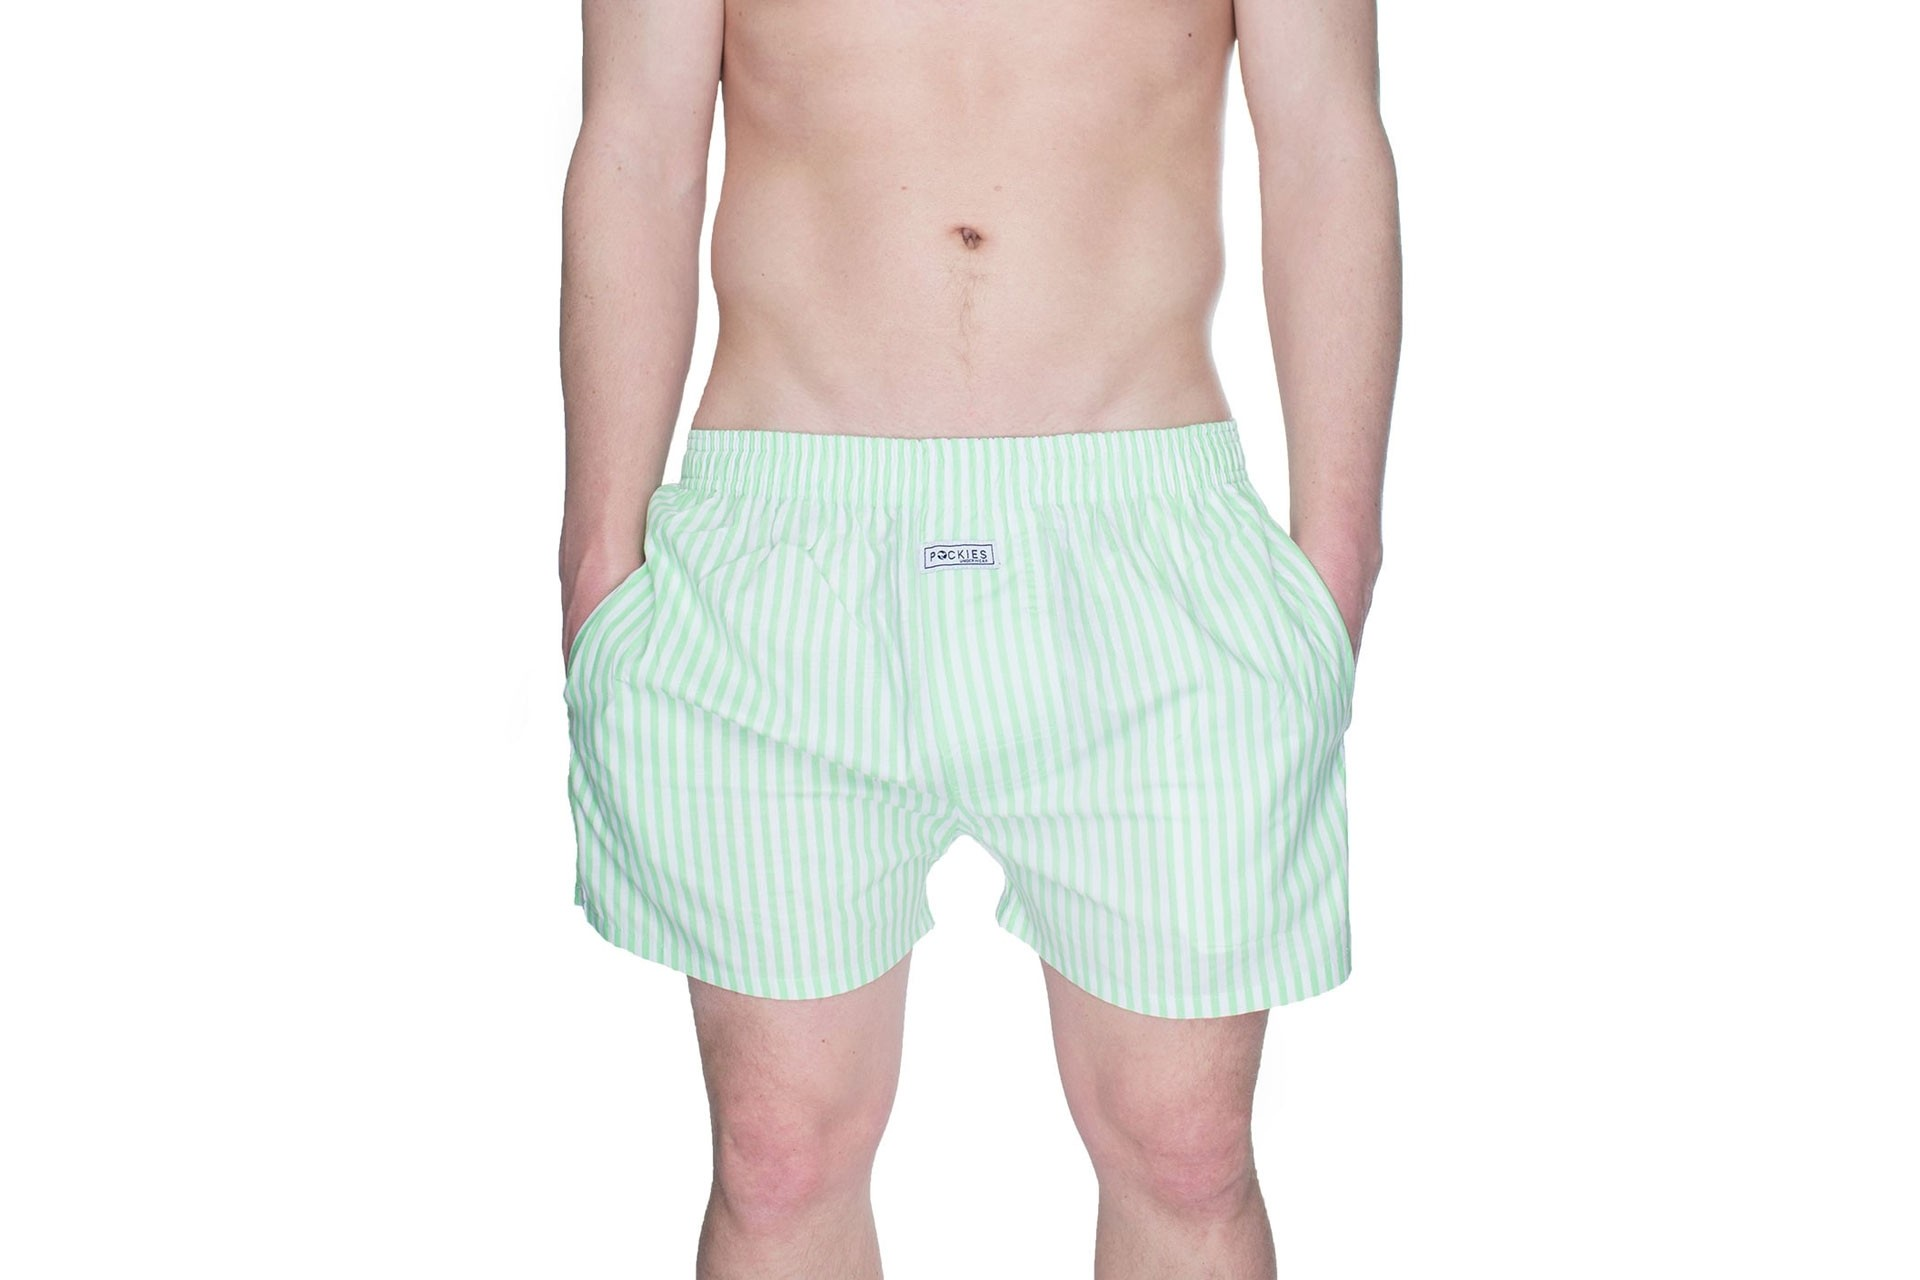 Foto van Pockies Boxershort Mint Stripes Mint